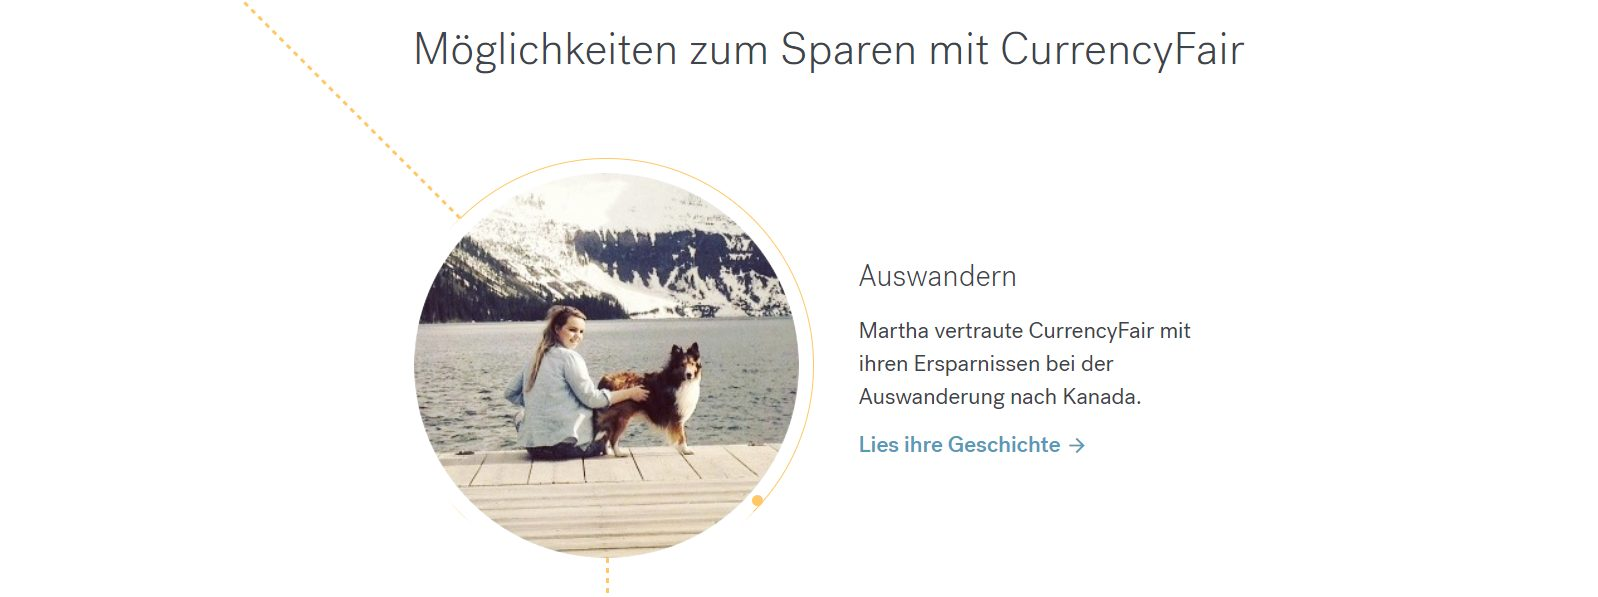 currencyfair erfahrungen review